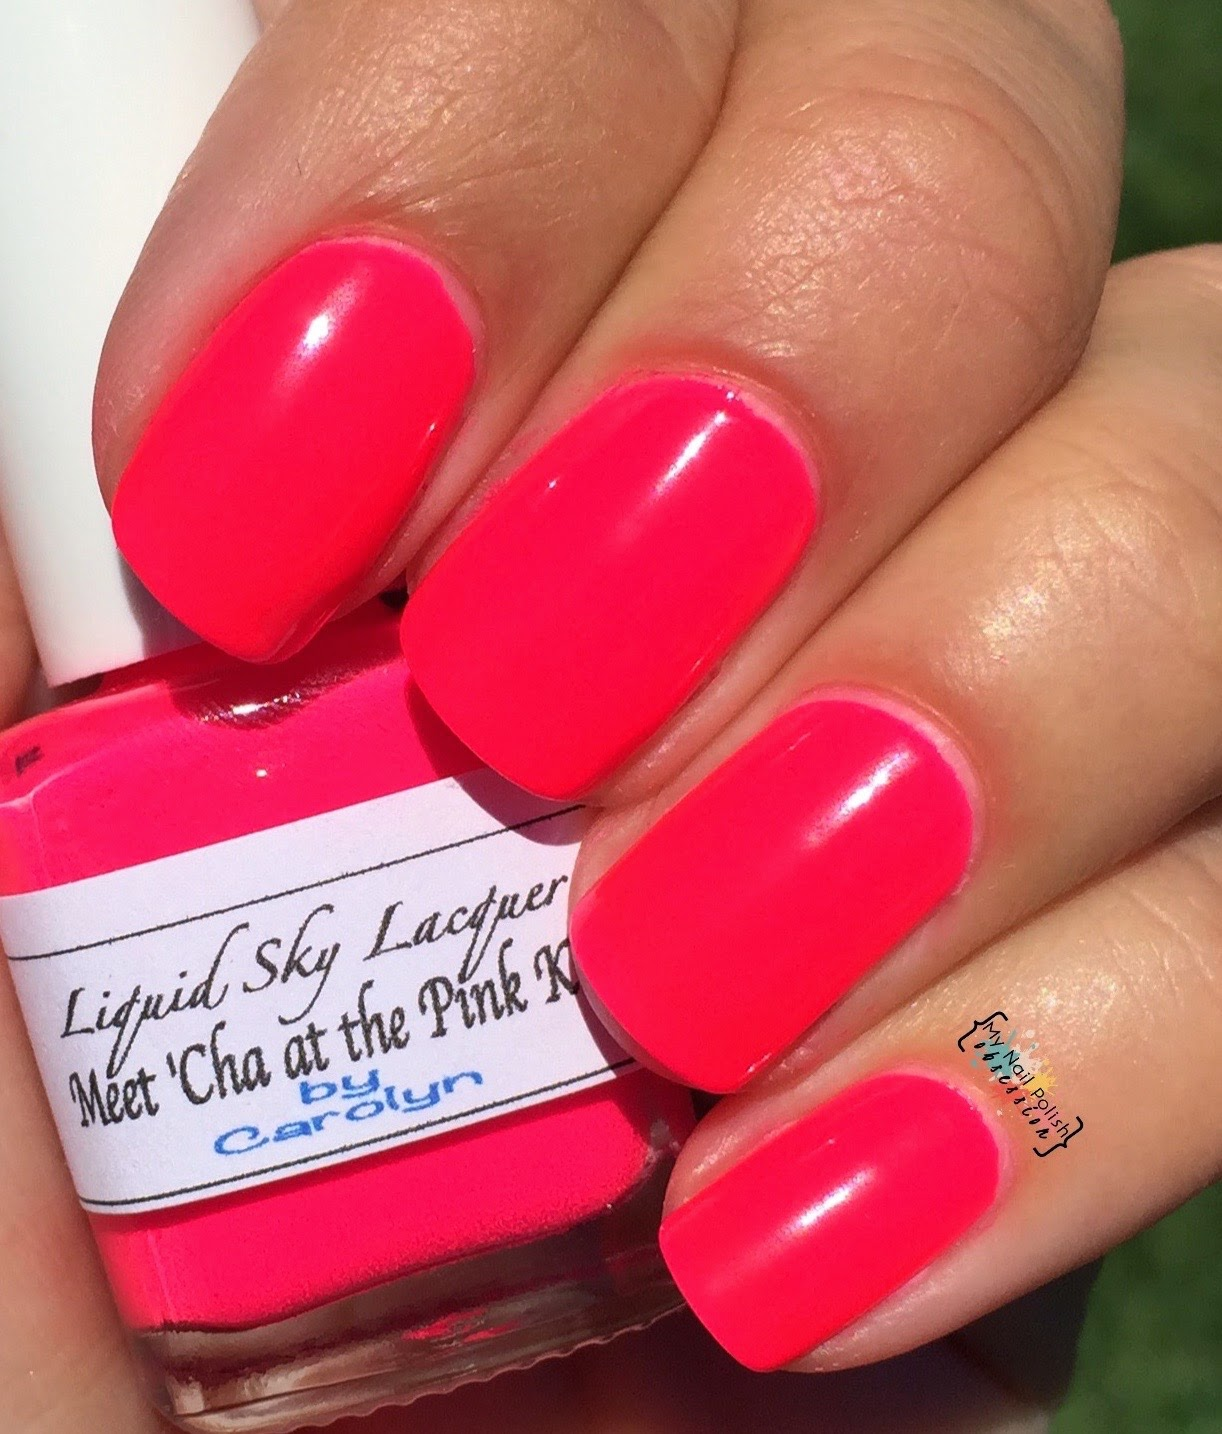 Liquid Sky Lacquer Meet 'Cha at the Pink Kitty